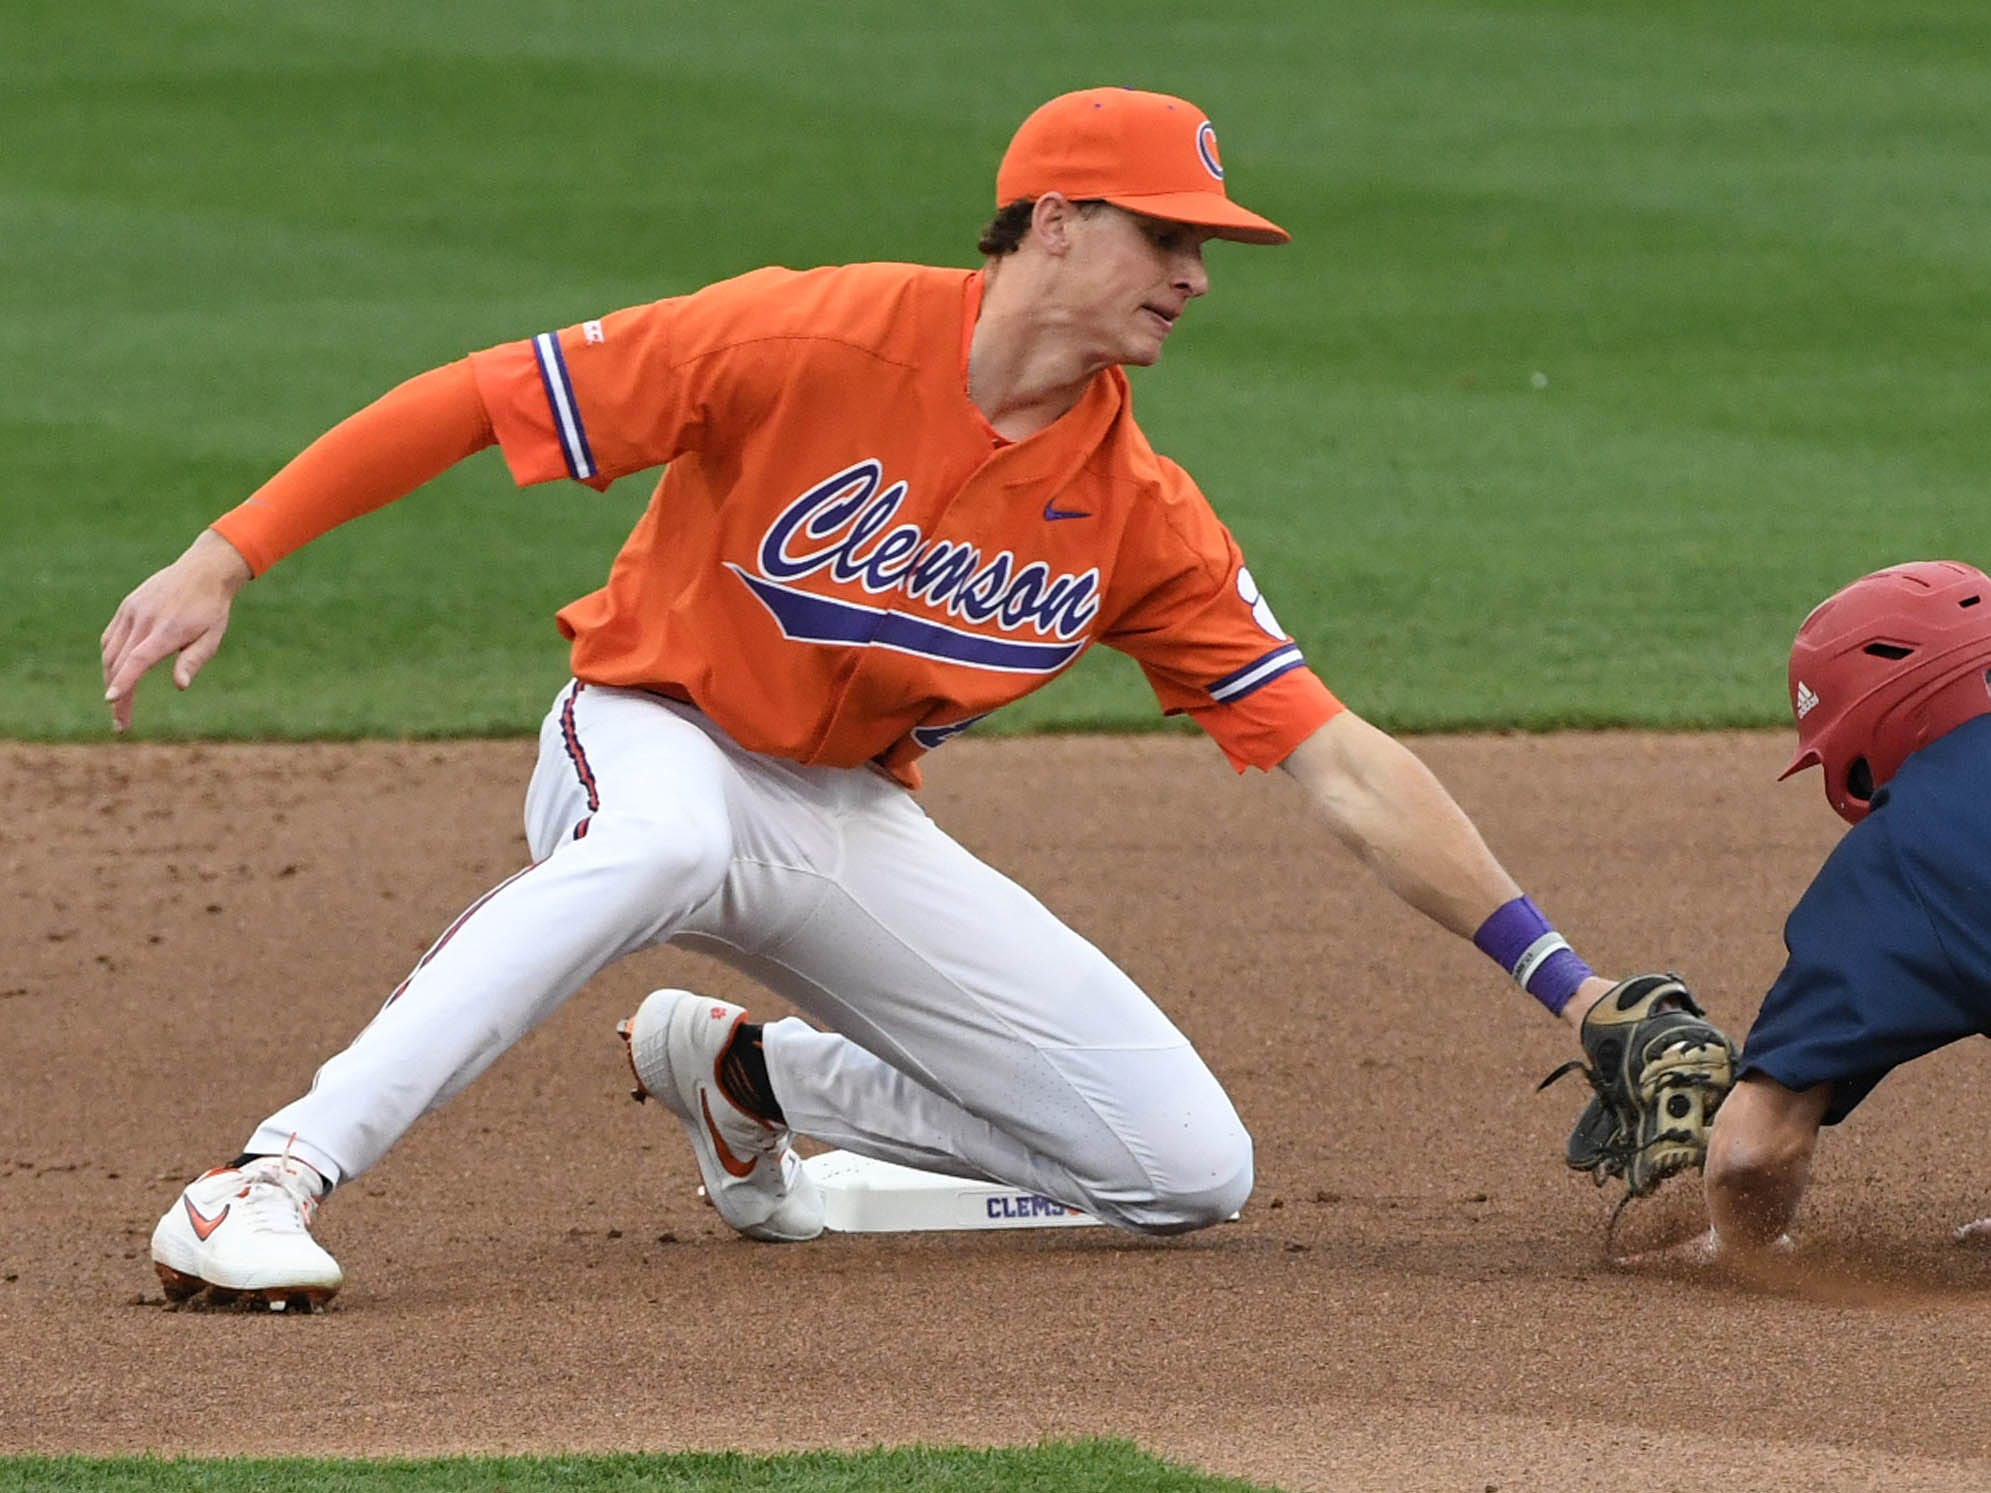 Clemson junior Logan Davidson(8) tags out South Alabama out fielder Ethan Wilson (34) at second base during the top of the sixth inning at Doug Kingsmore Stadium in Clemson Friday, February 15, 2019.